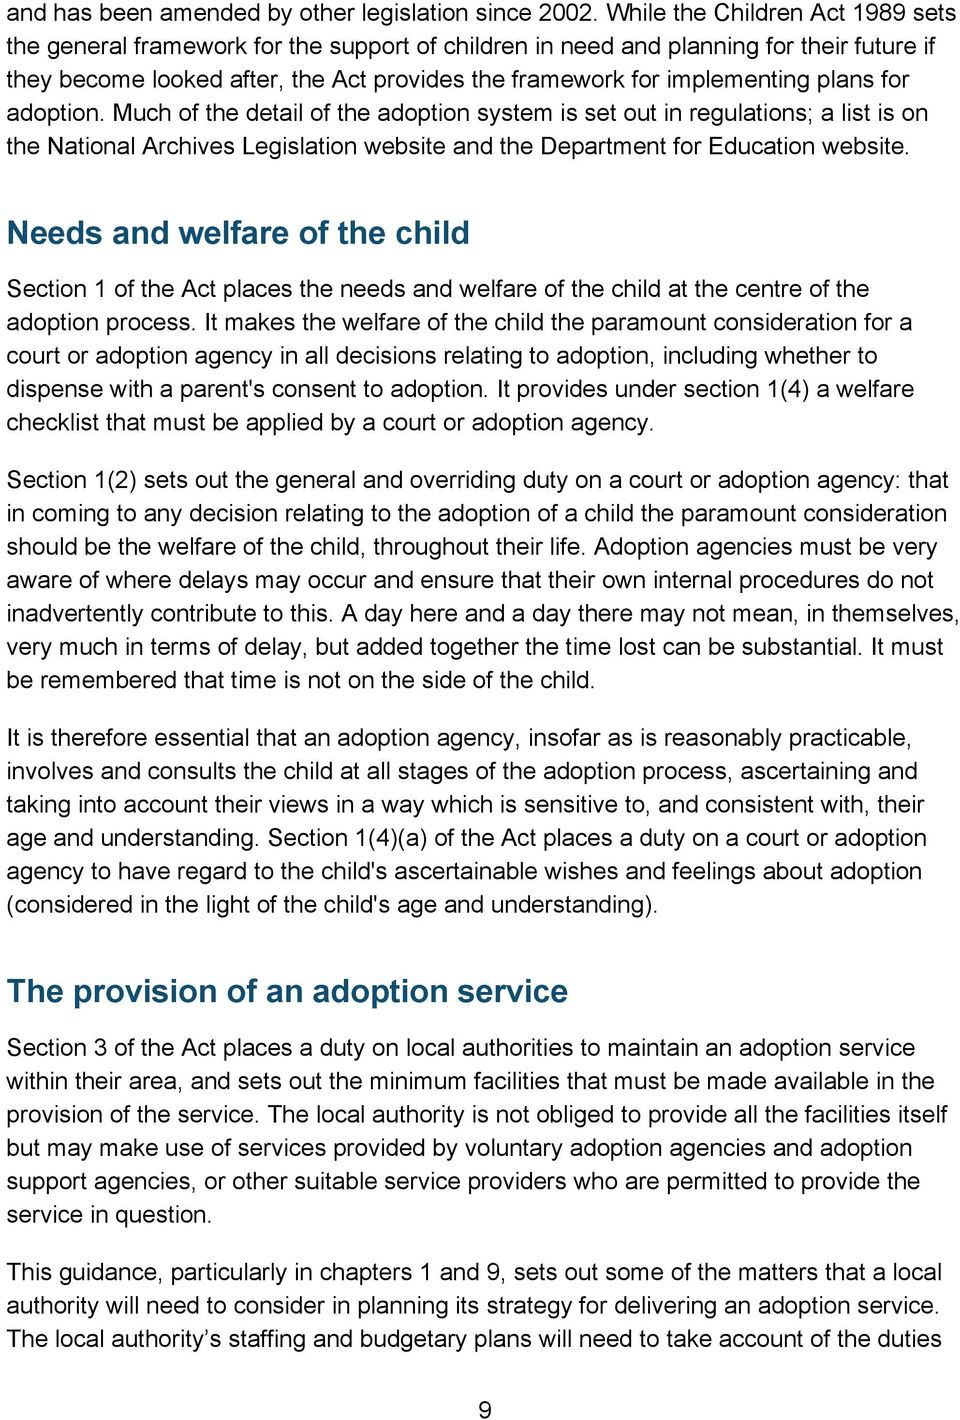 plans for adoption. Much of the detail of the adoption system is set out in regulations; a list is on the National Archives Legislation website and the Department for Education website.